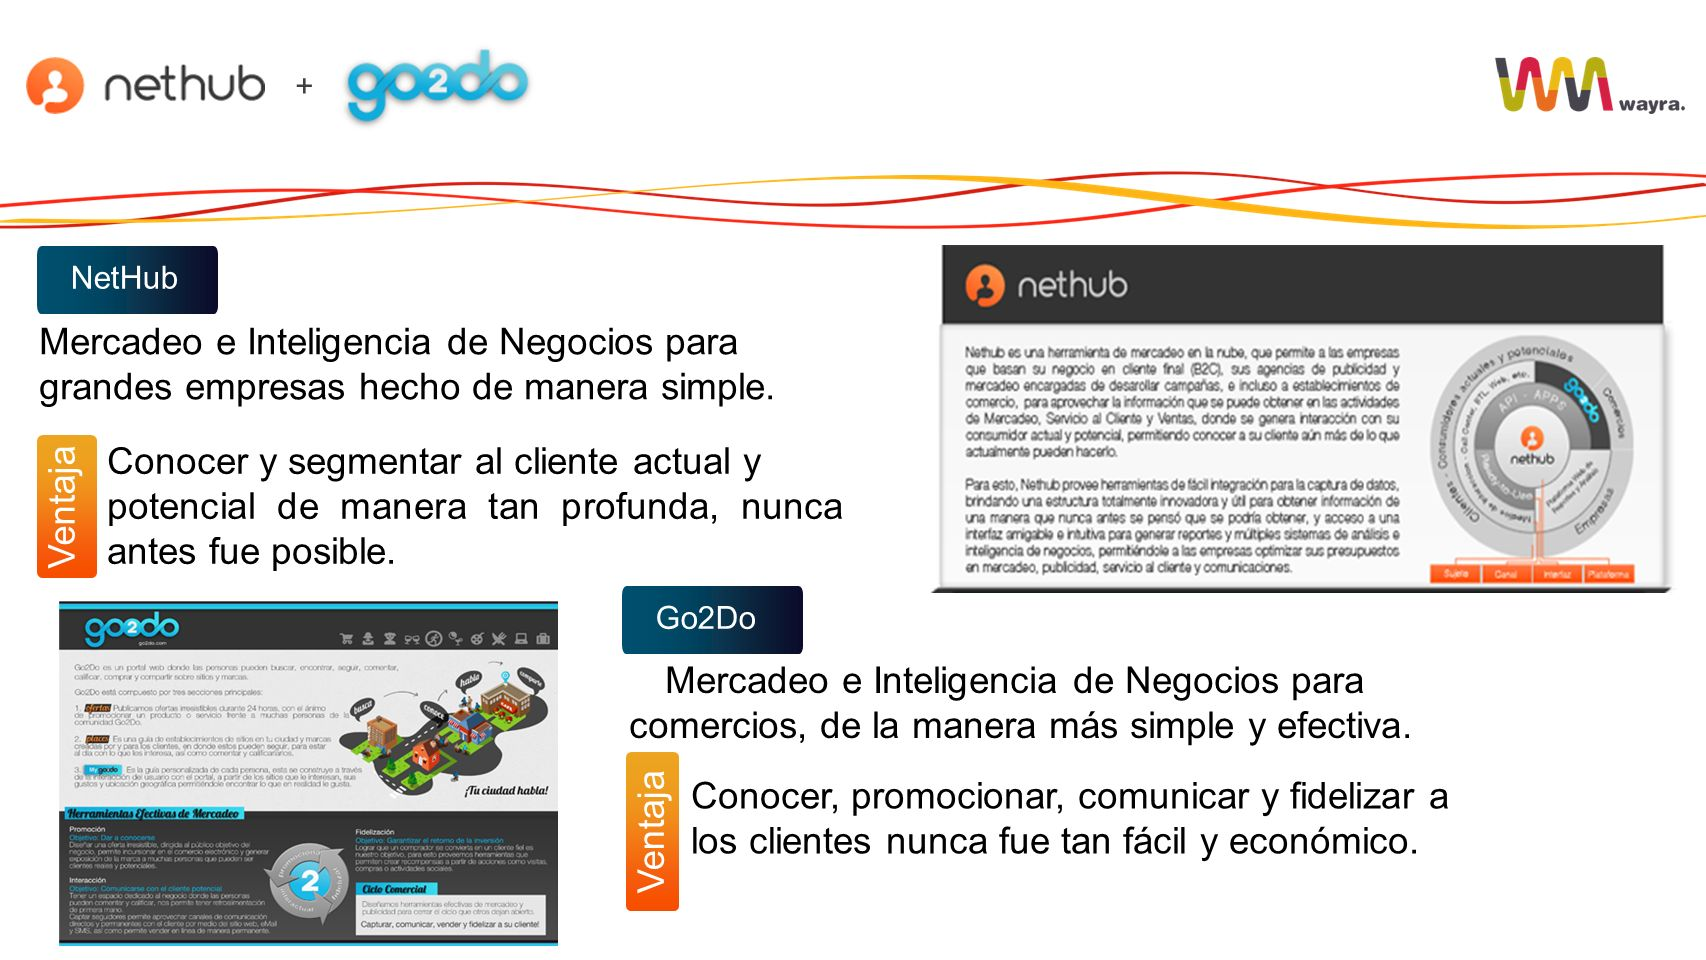 + Mercadeo e Inteligencia de Negocios para grandes empresas hecho de manera simple.